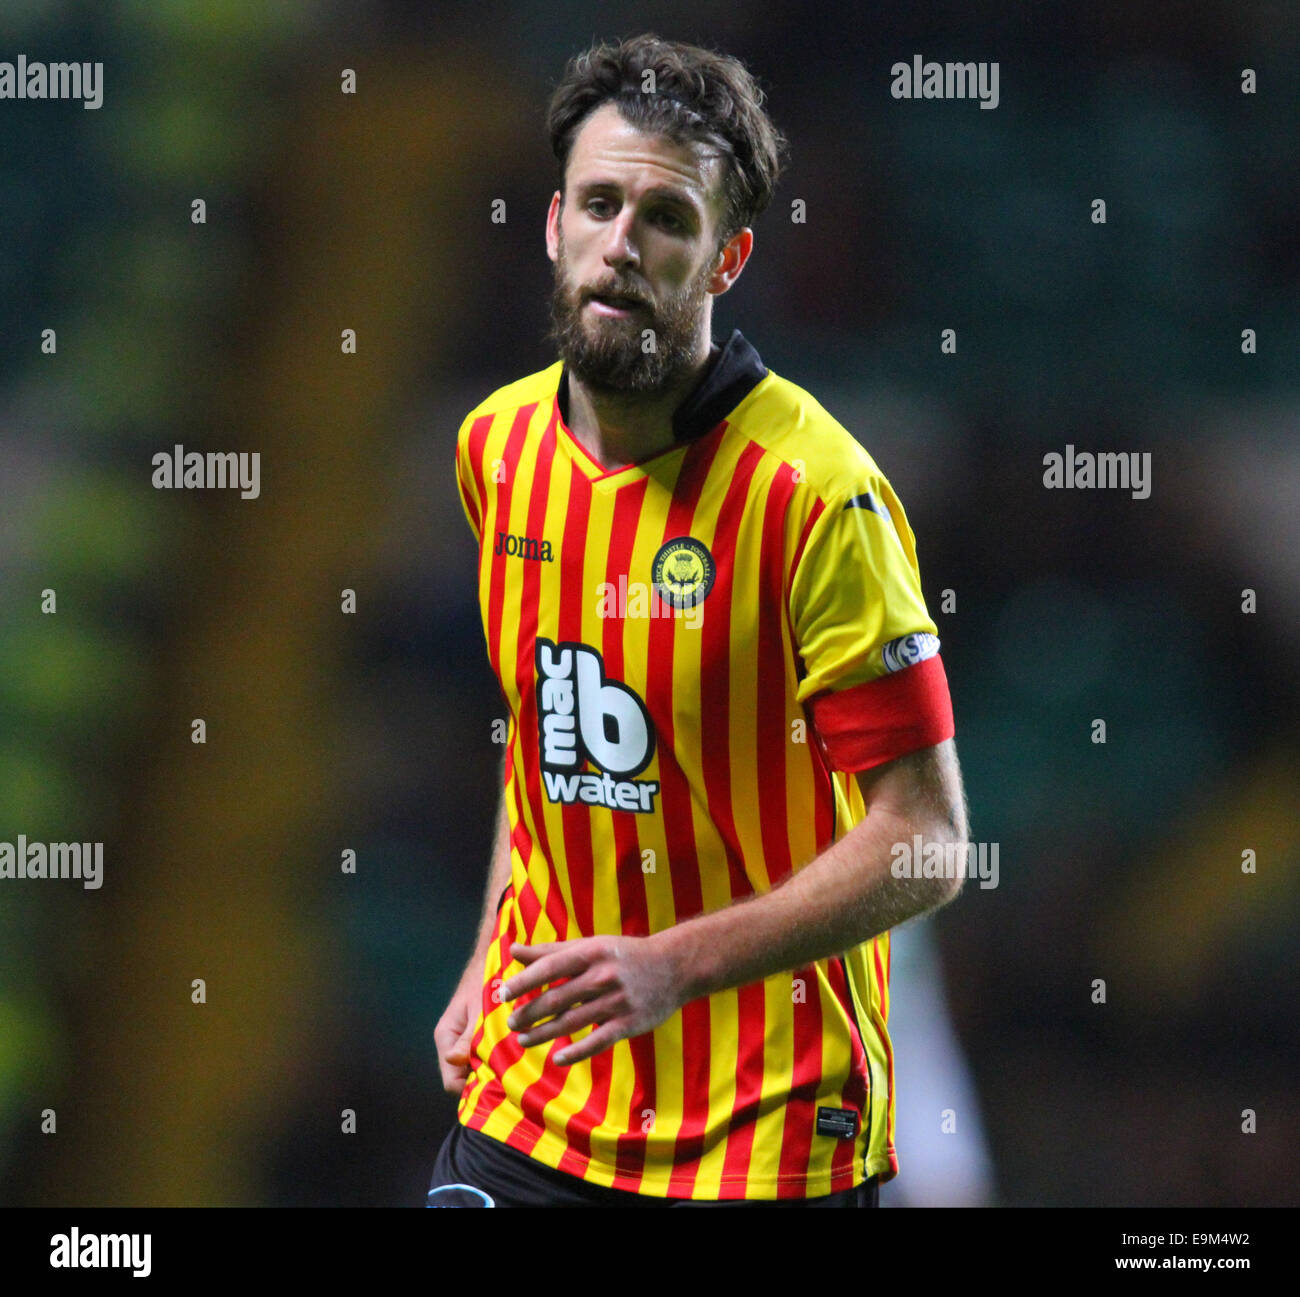 Glasgow, Scotland. 29th Oct, 2014. Scottish League Cup. Celtic versus Partick Thistle. Danny Seaborne of Partick - Stock Image